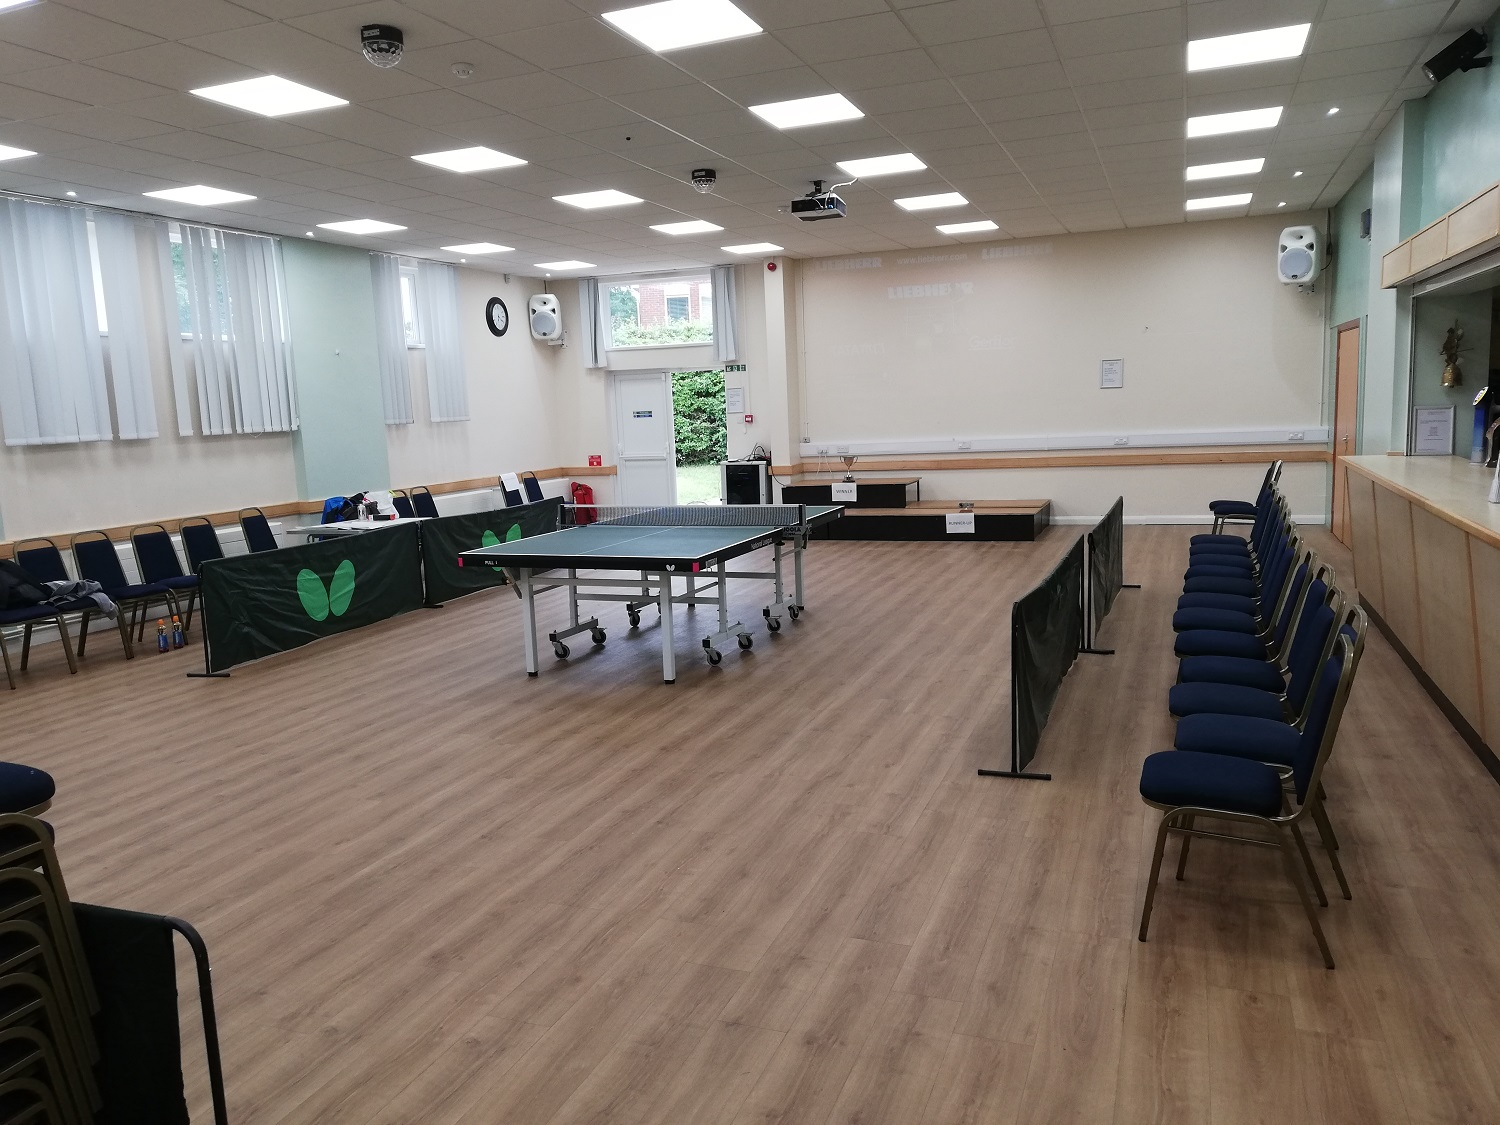 Herne Hall - Table Tennis Match